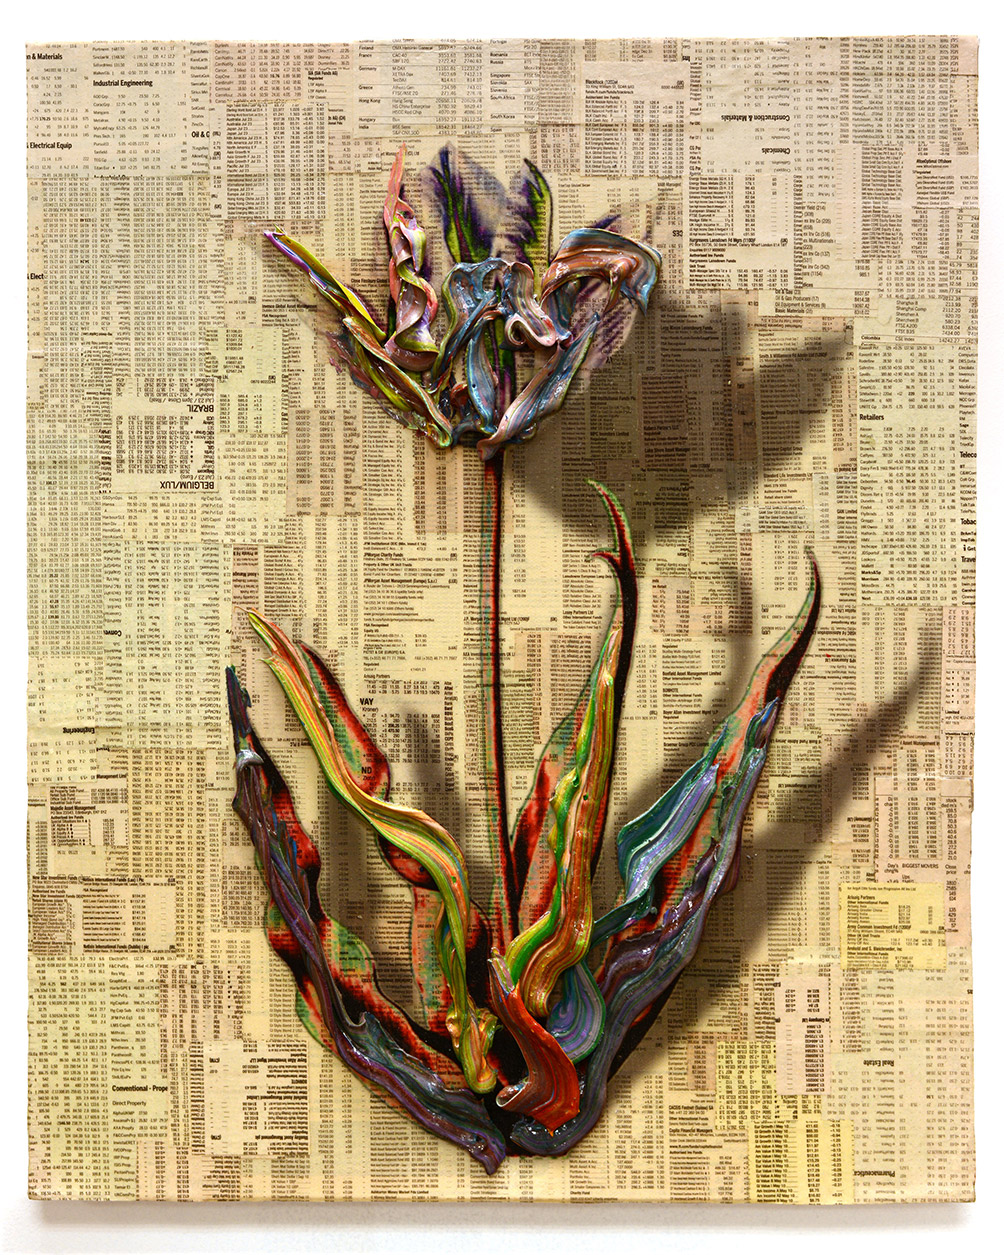 Inverted Tulipbook De Hoer 2013 Gordon Cheung